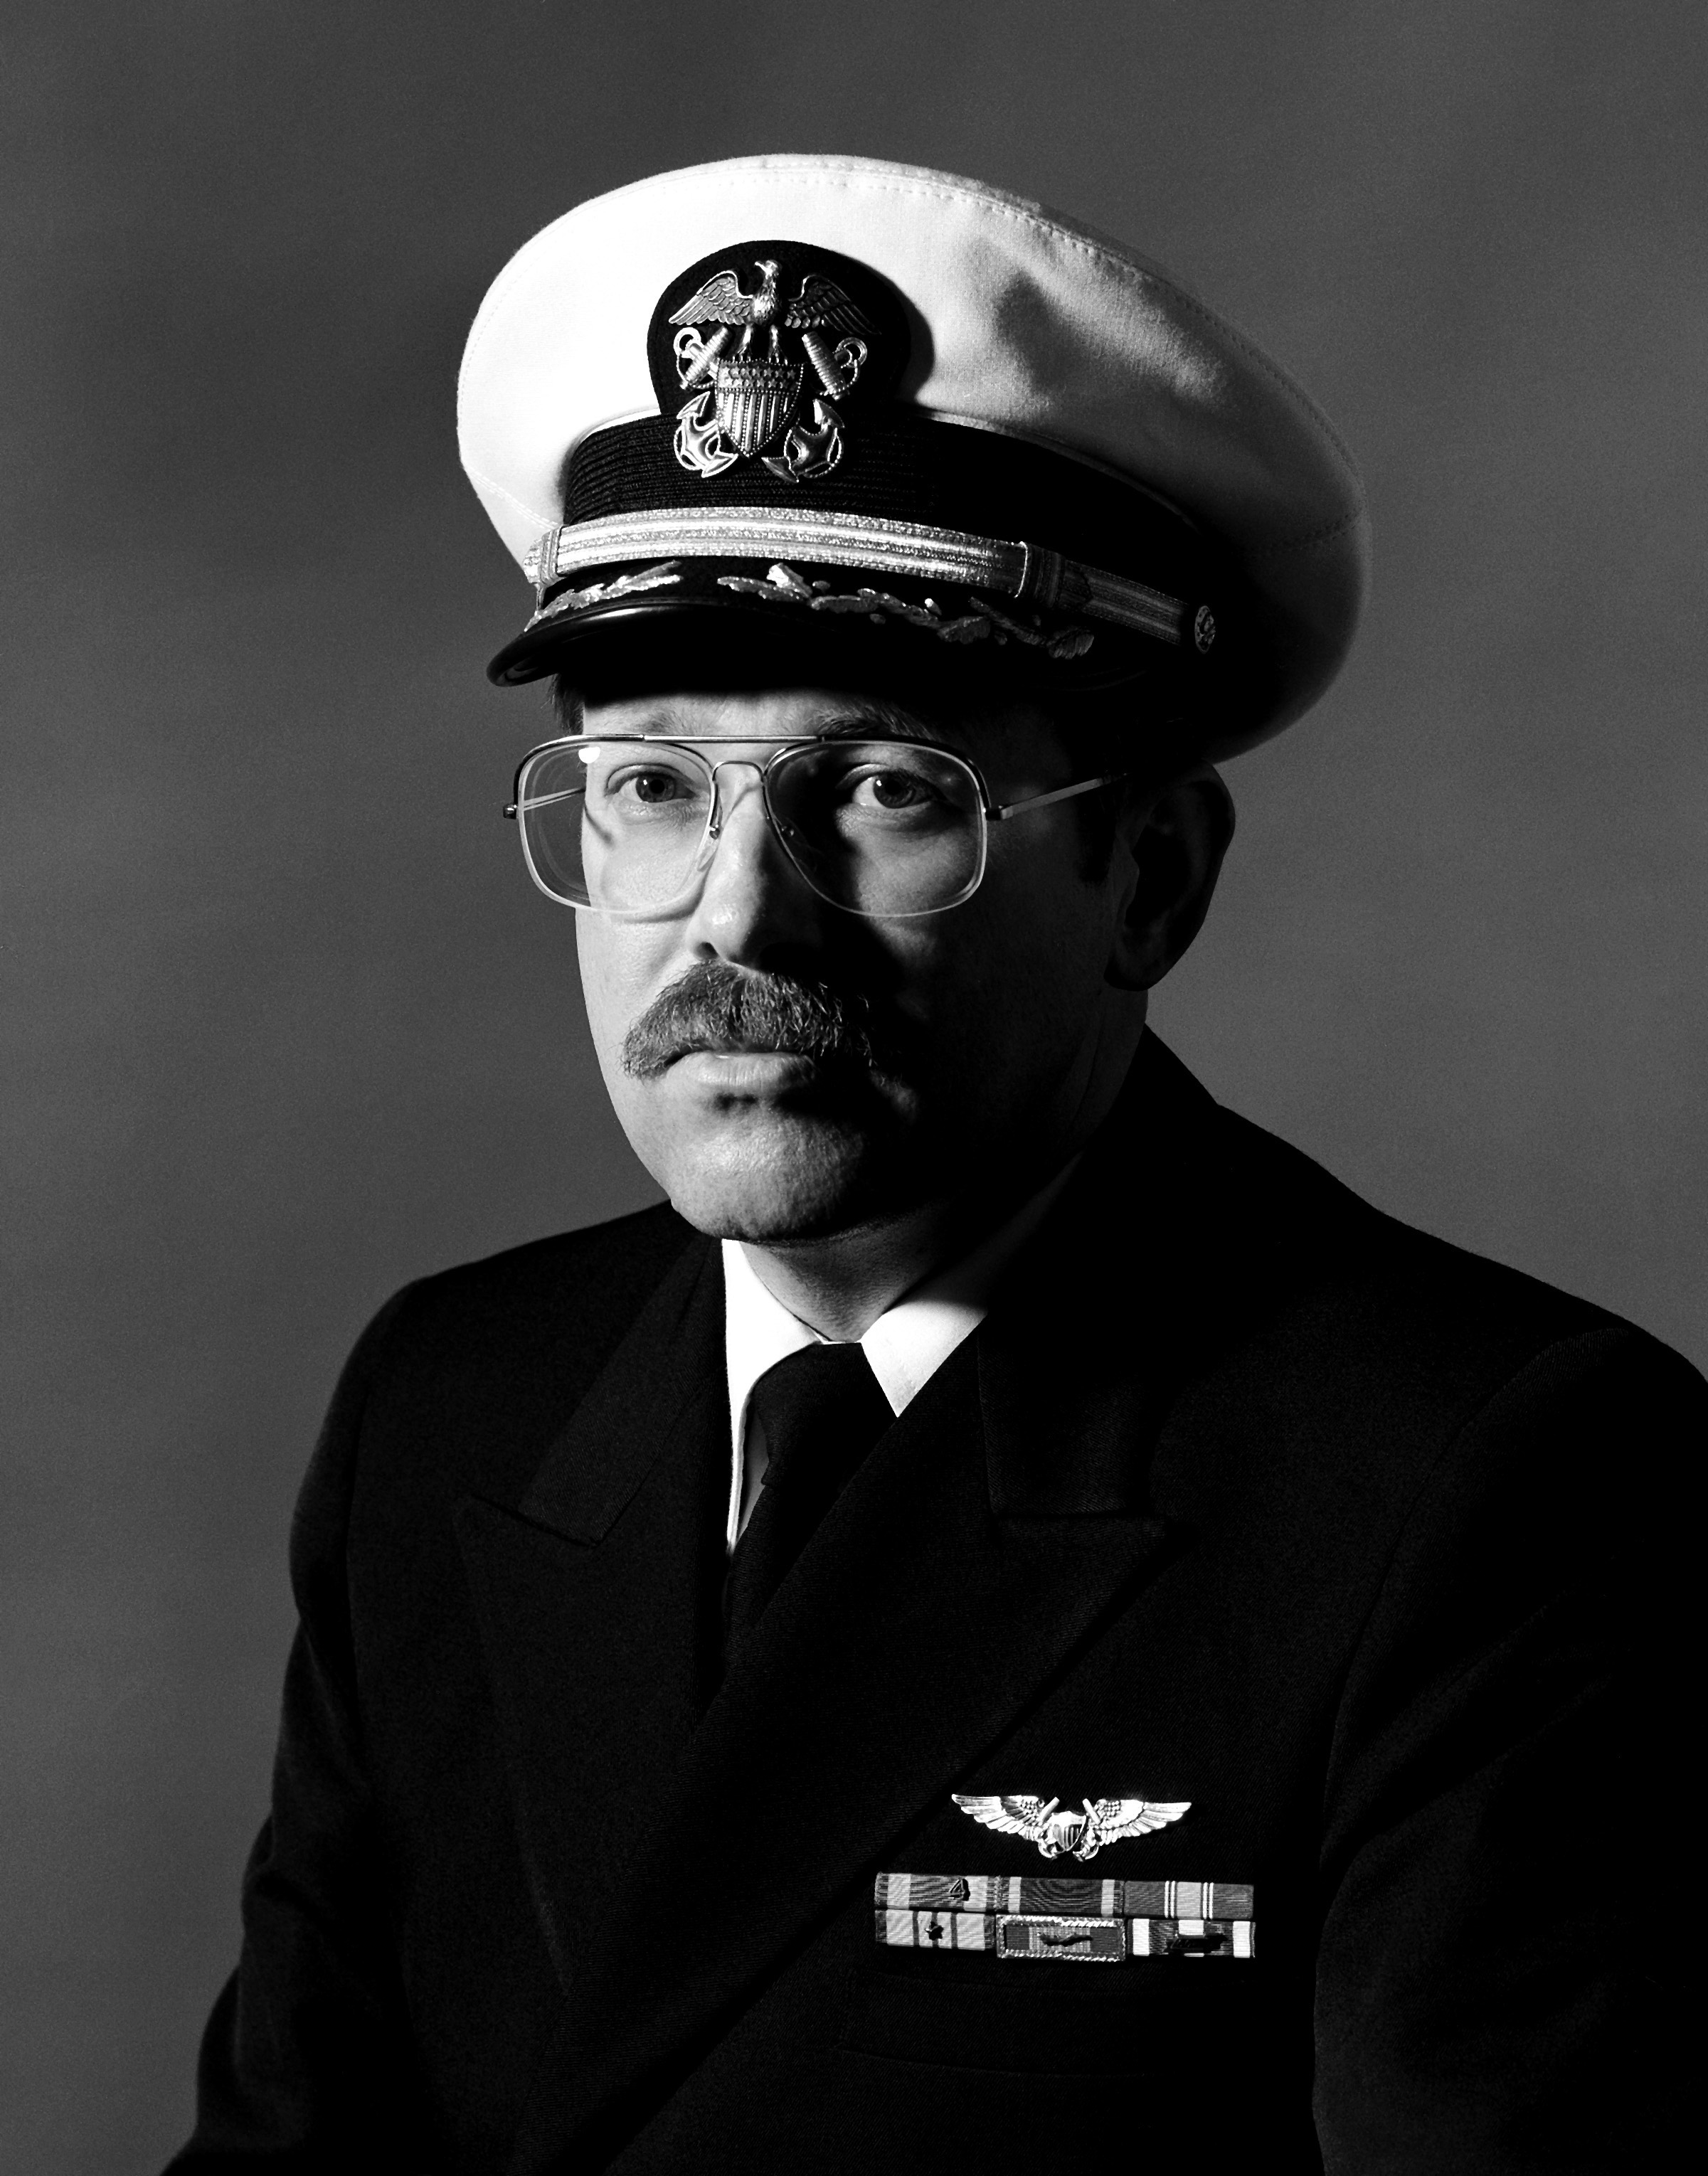 CDR Danie A. Woxland, USN (covered)